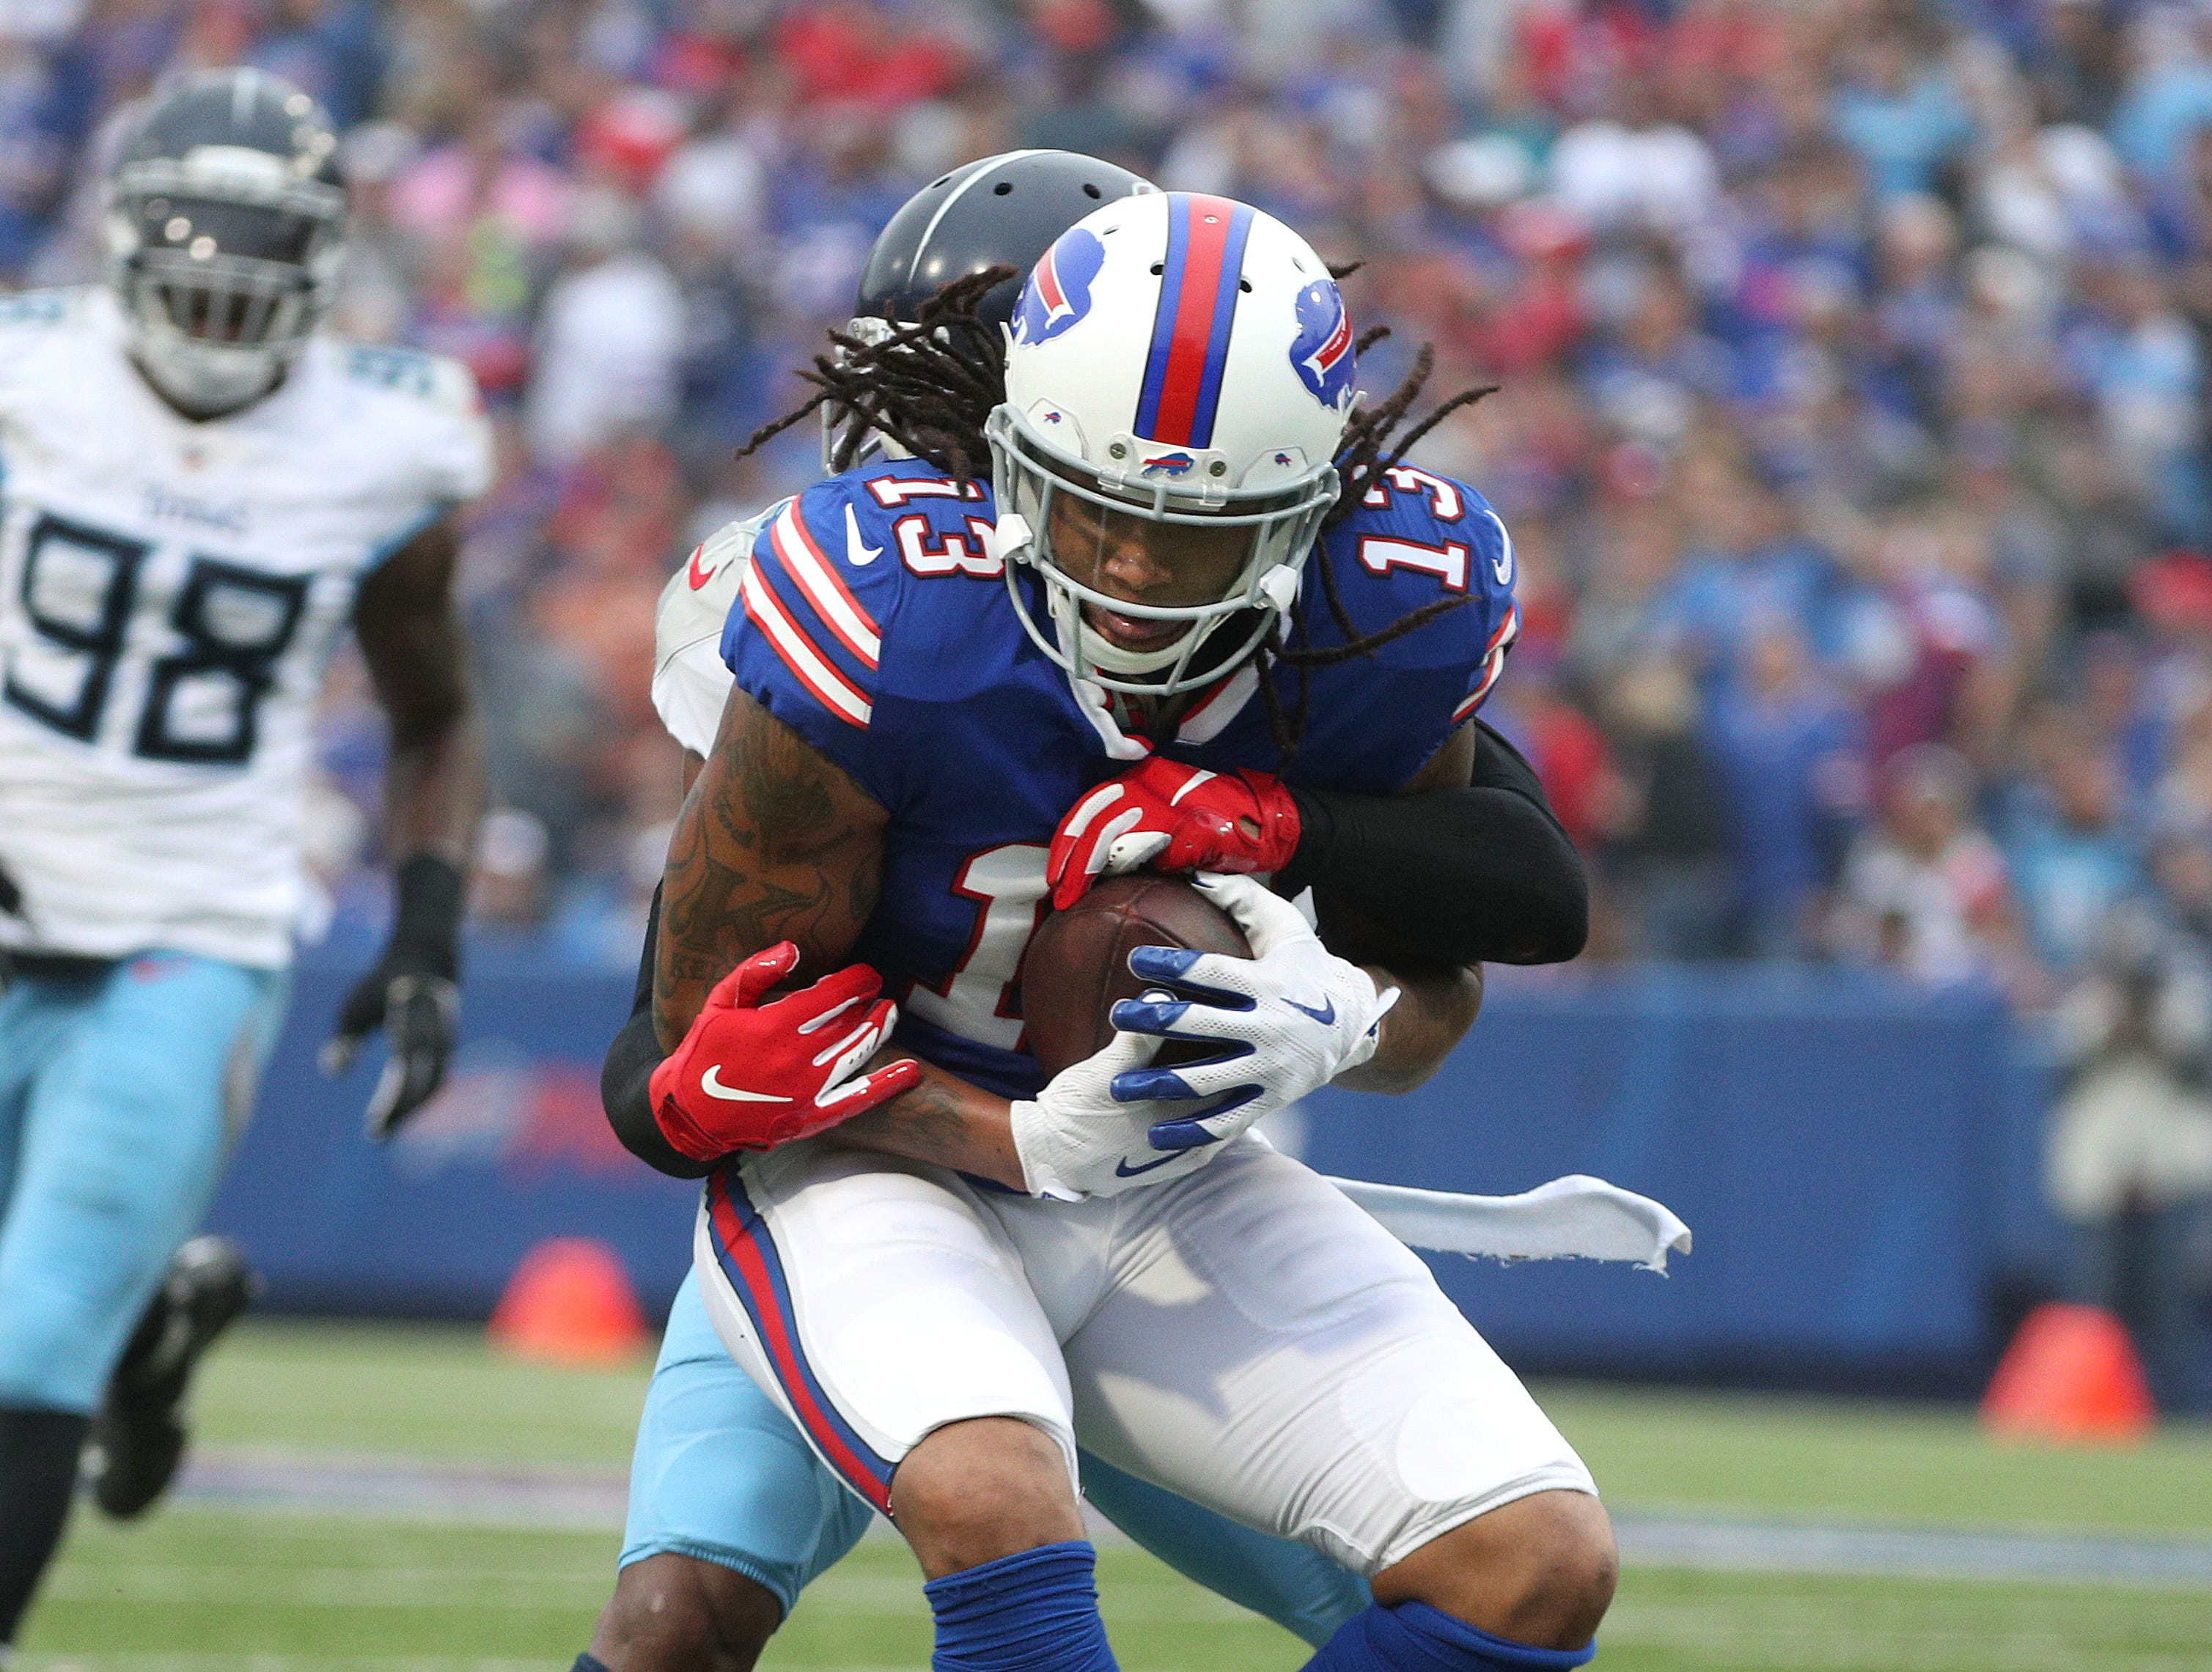 Bills receiver Kelvin Benjamin is wrapped up after a catch.